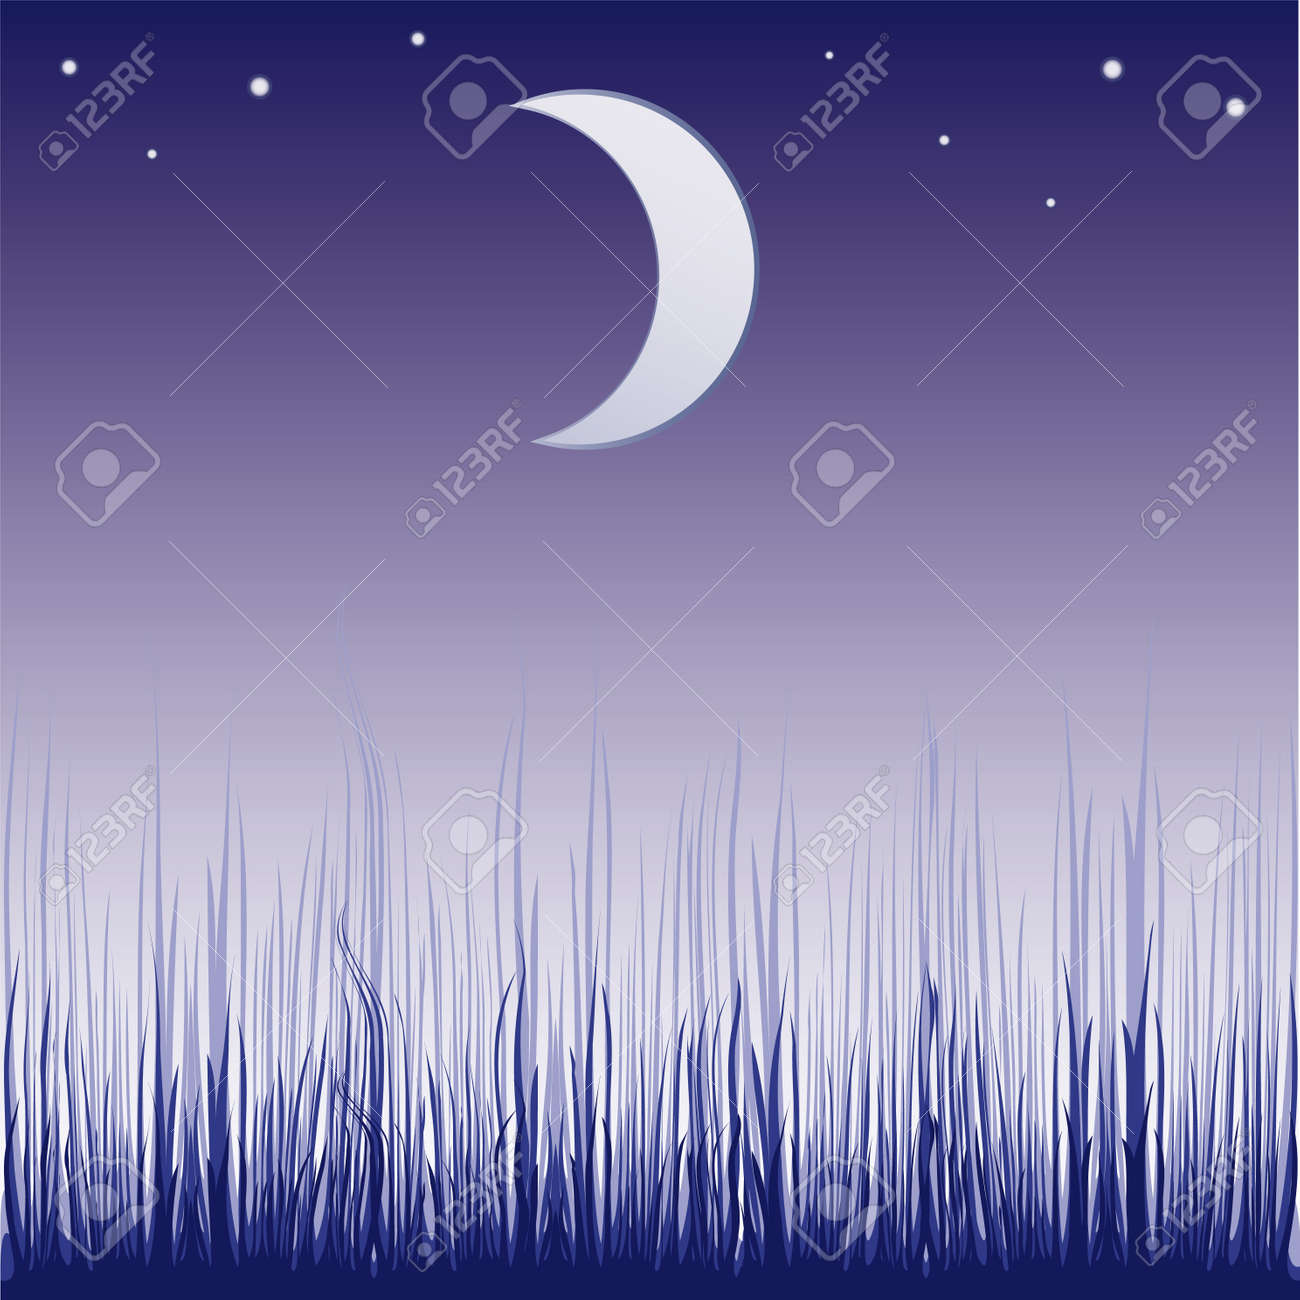 Abstract colorful illustration with dark forest silhouette illuminated by the light of the moon Stock Vector - 6785311